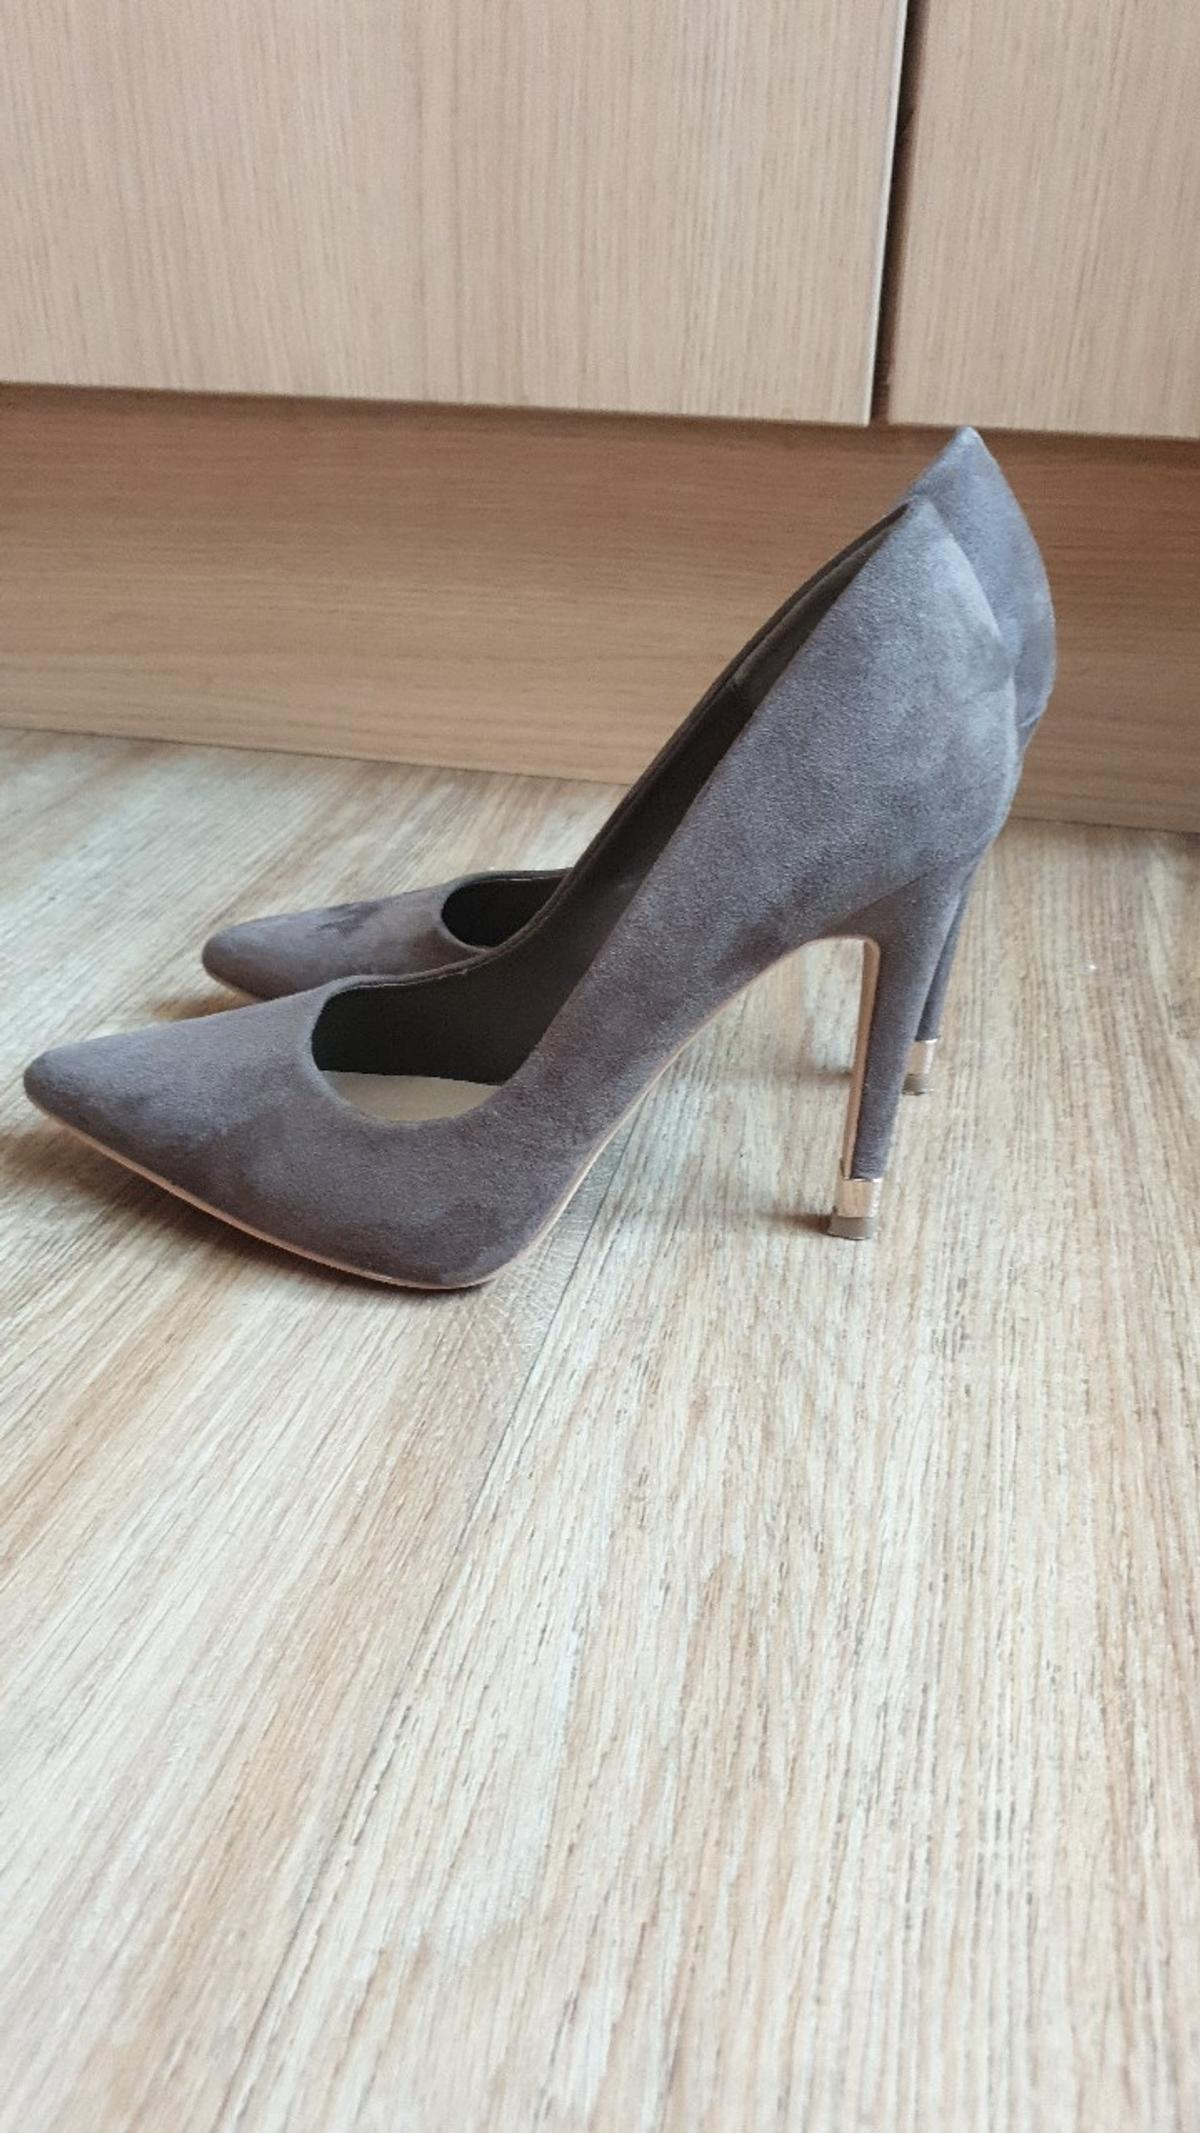 suede khaki stilettos from new look size 5 worn once for 3 hours to christening non smoking home immaculate condition cost £24.99